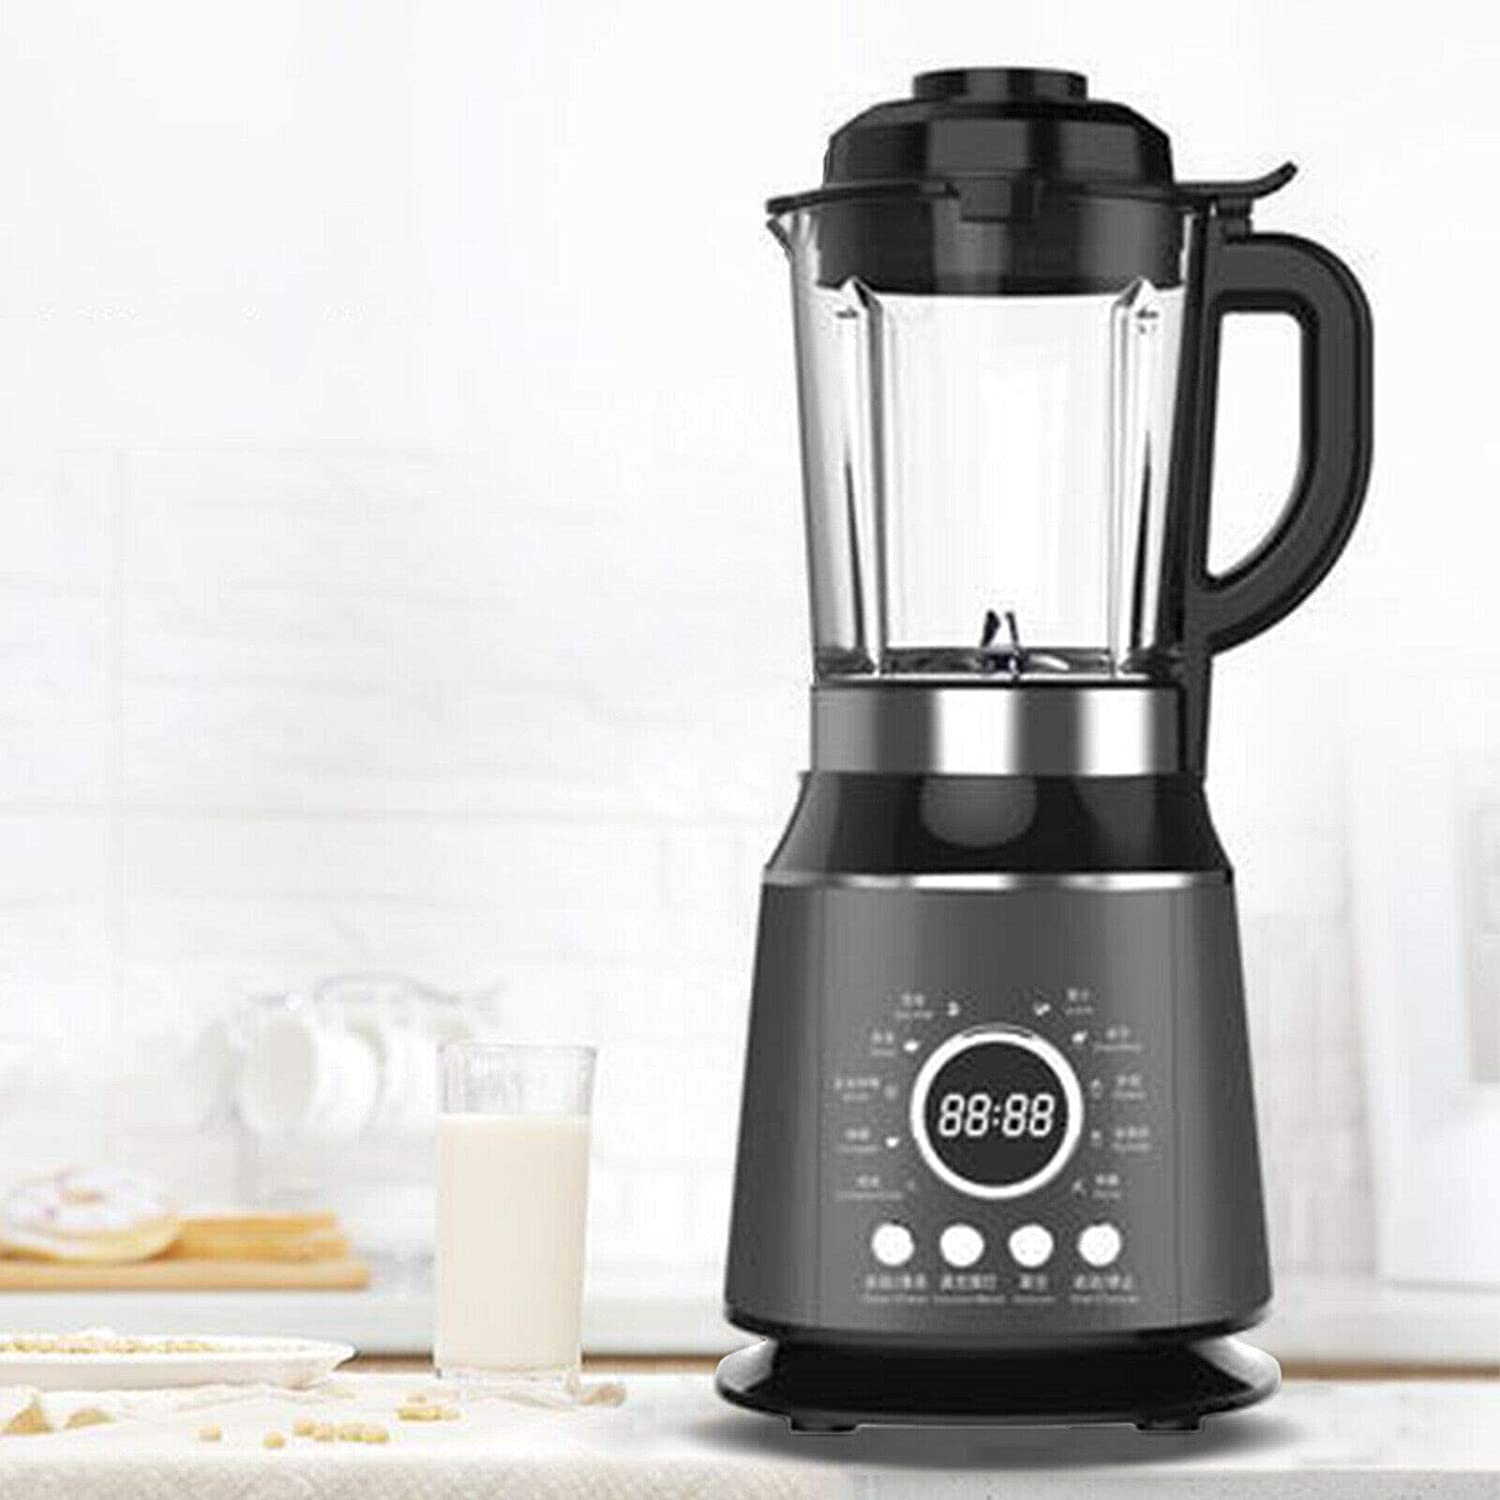 1000W Electric Countertop Heating Multifunctional Digital Professional Kitchen Smoothie Blender Capacity w/Heating Mixer 1.75L